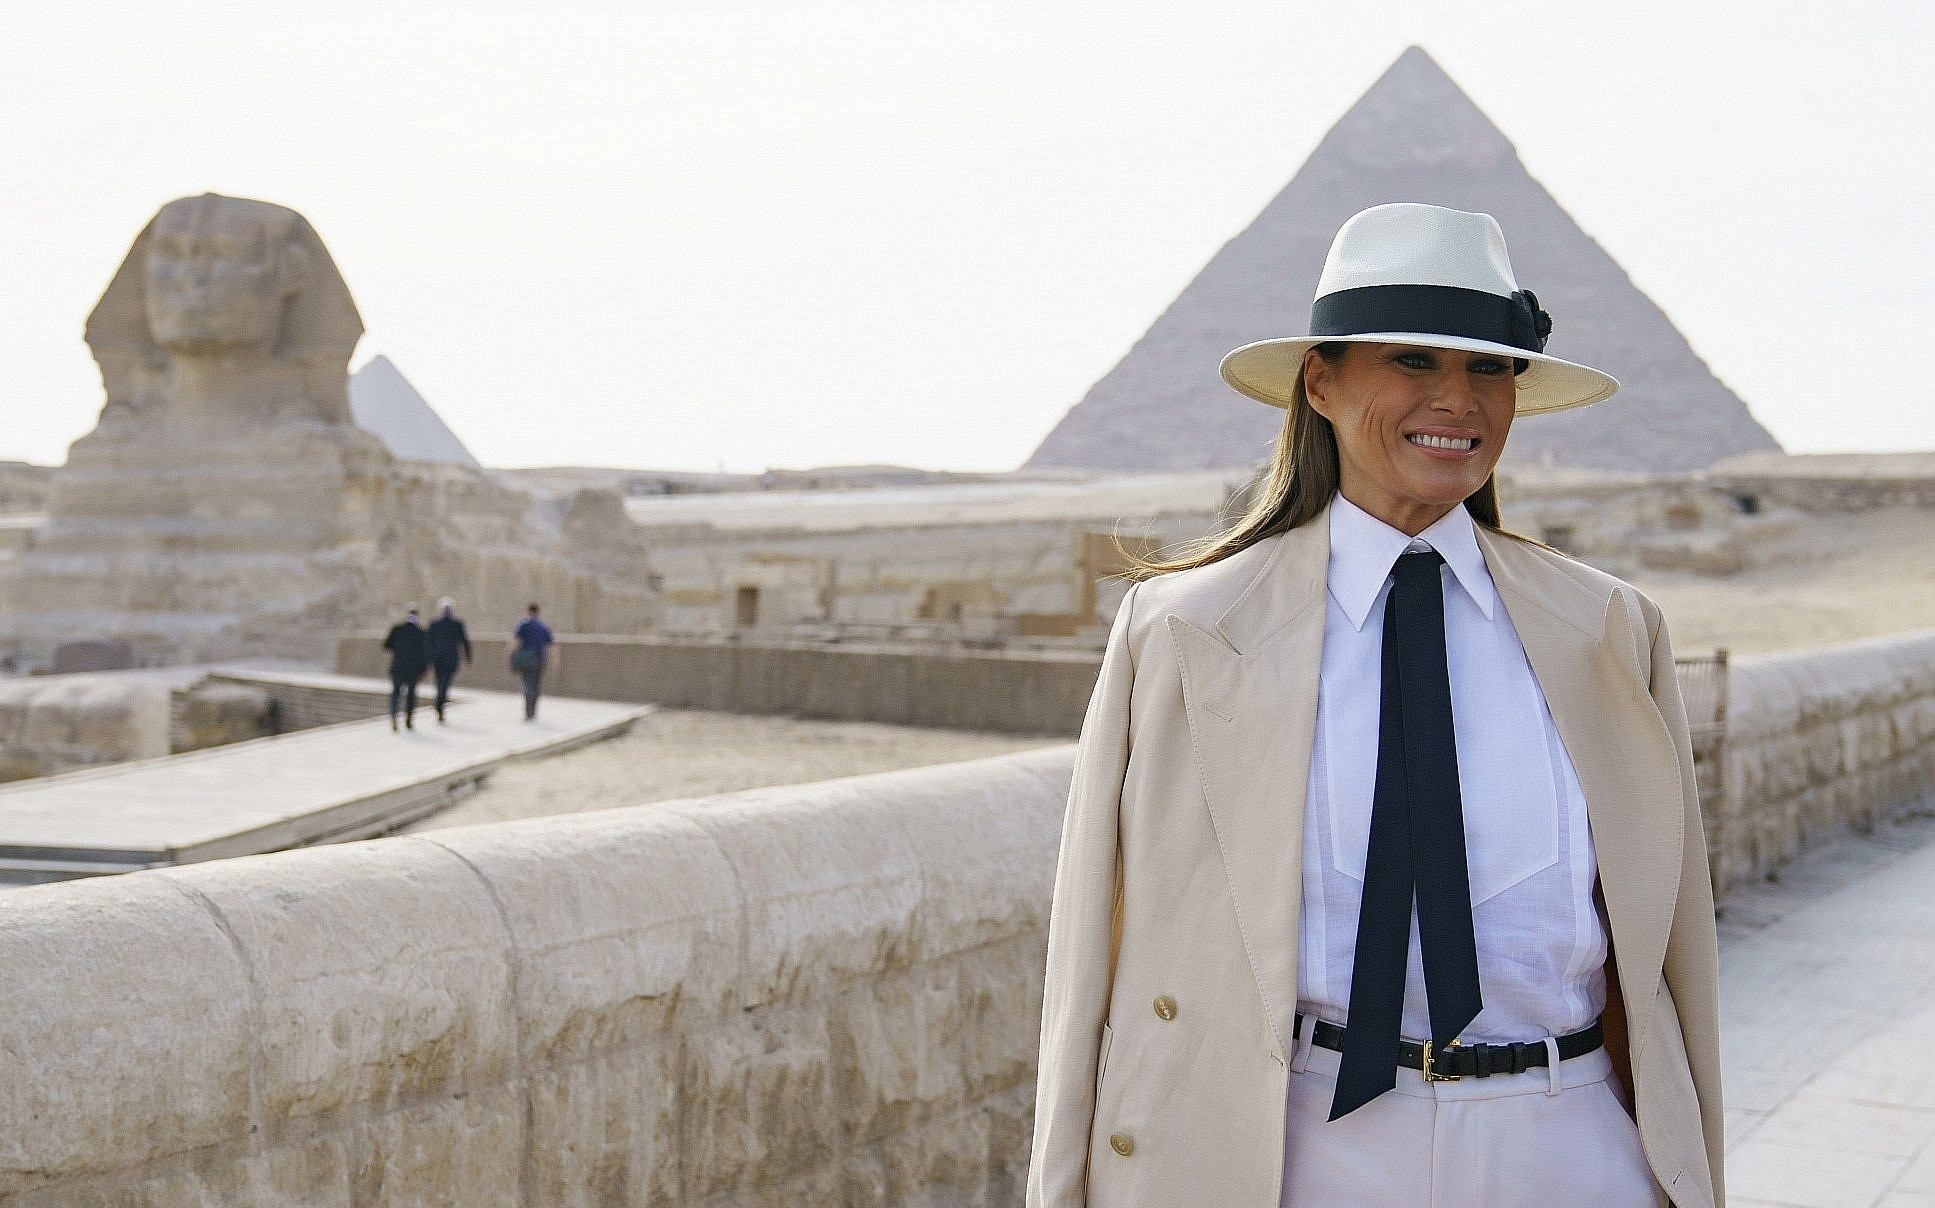 Melania Trump's menswear look in Africa inspires some praise - but mostly memes